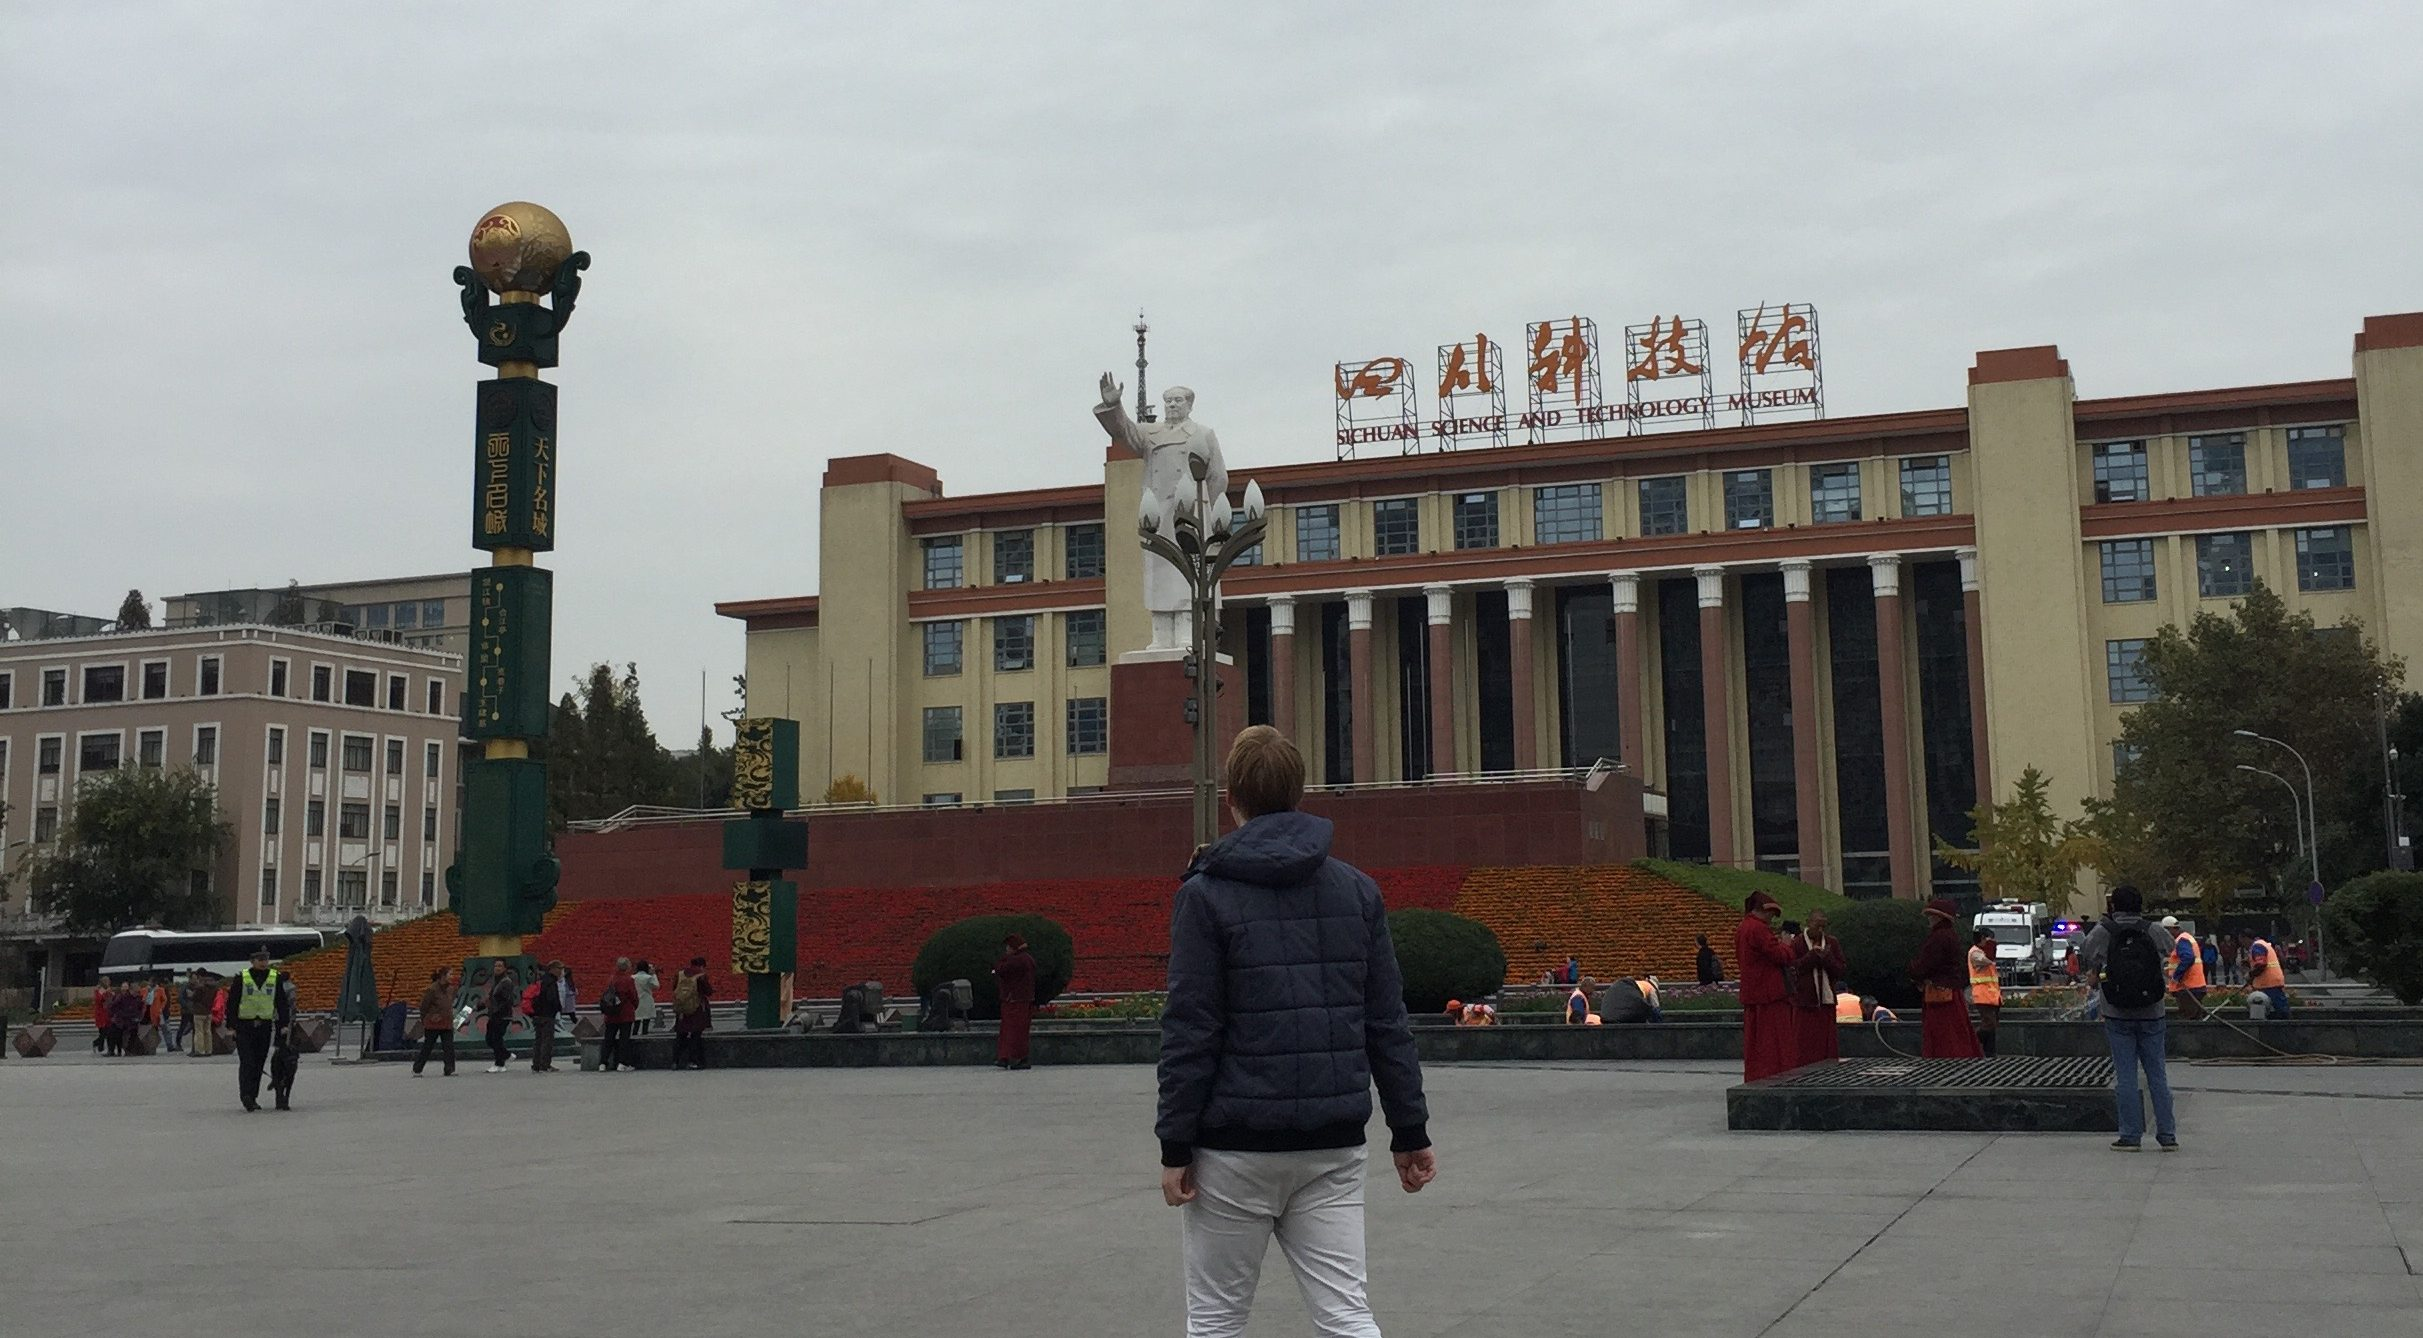 An Outsider Walks the Streets [Six Months in Sichuan Part 3]